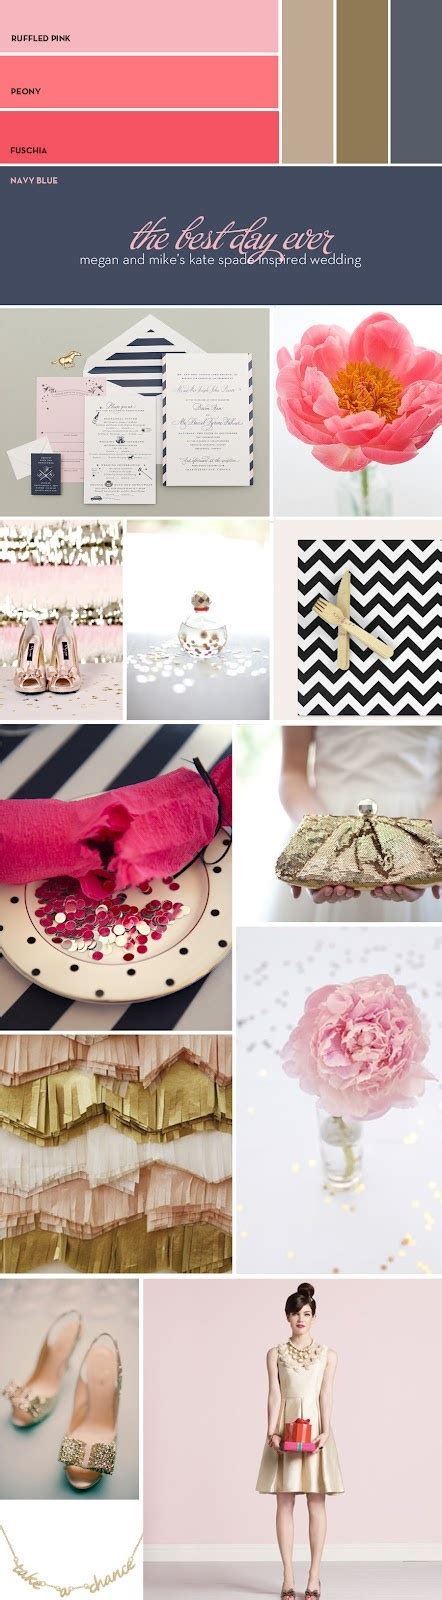 kate color schemes kate spade party color scheme kate spate birthday party